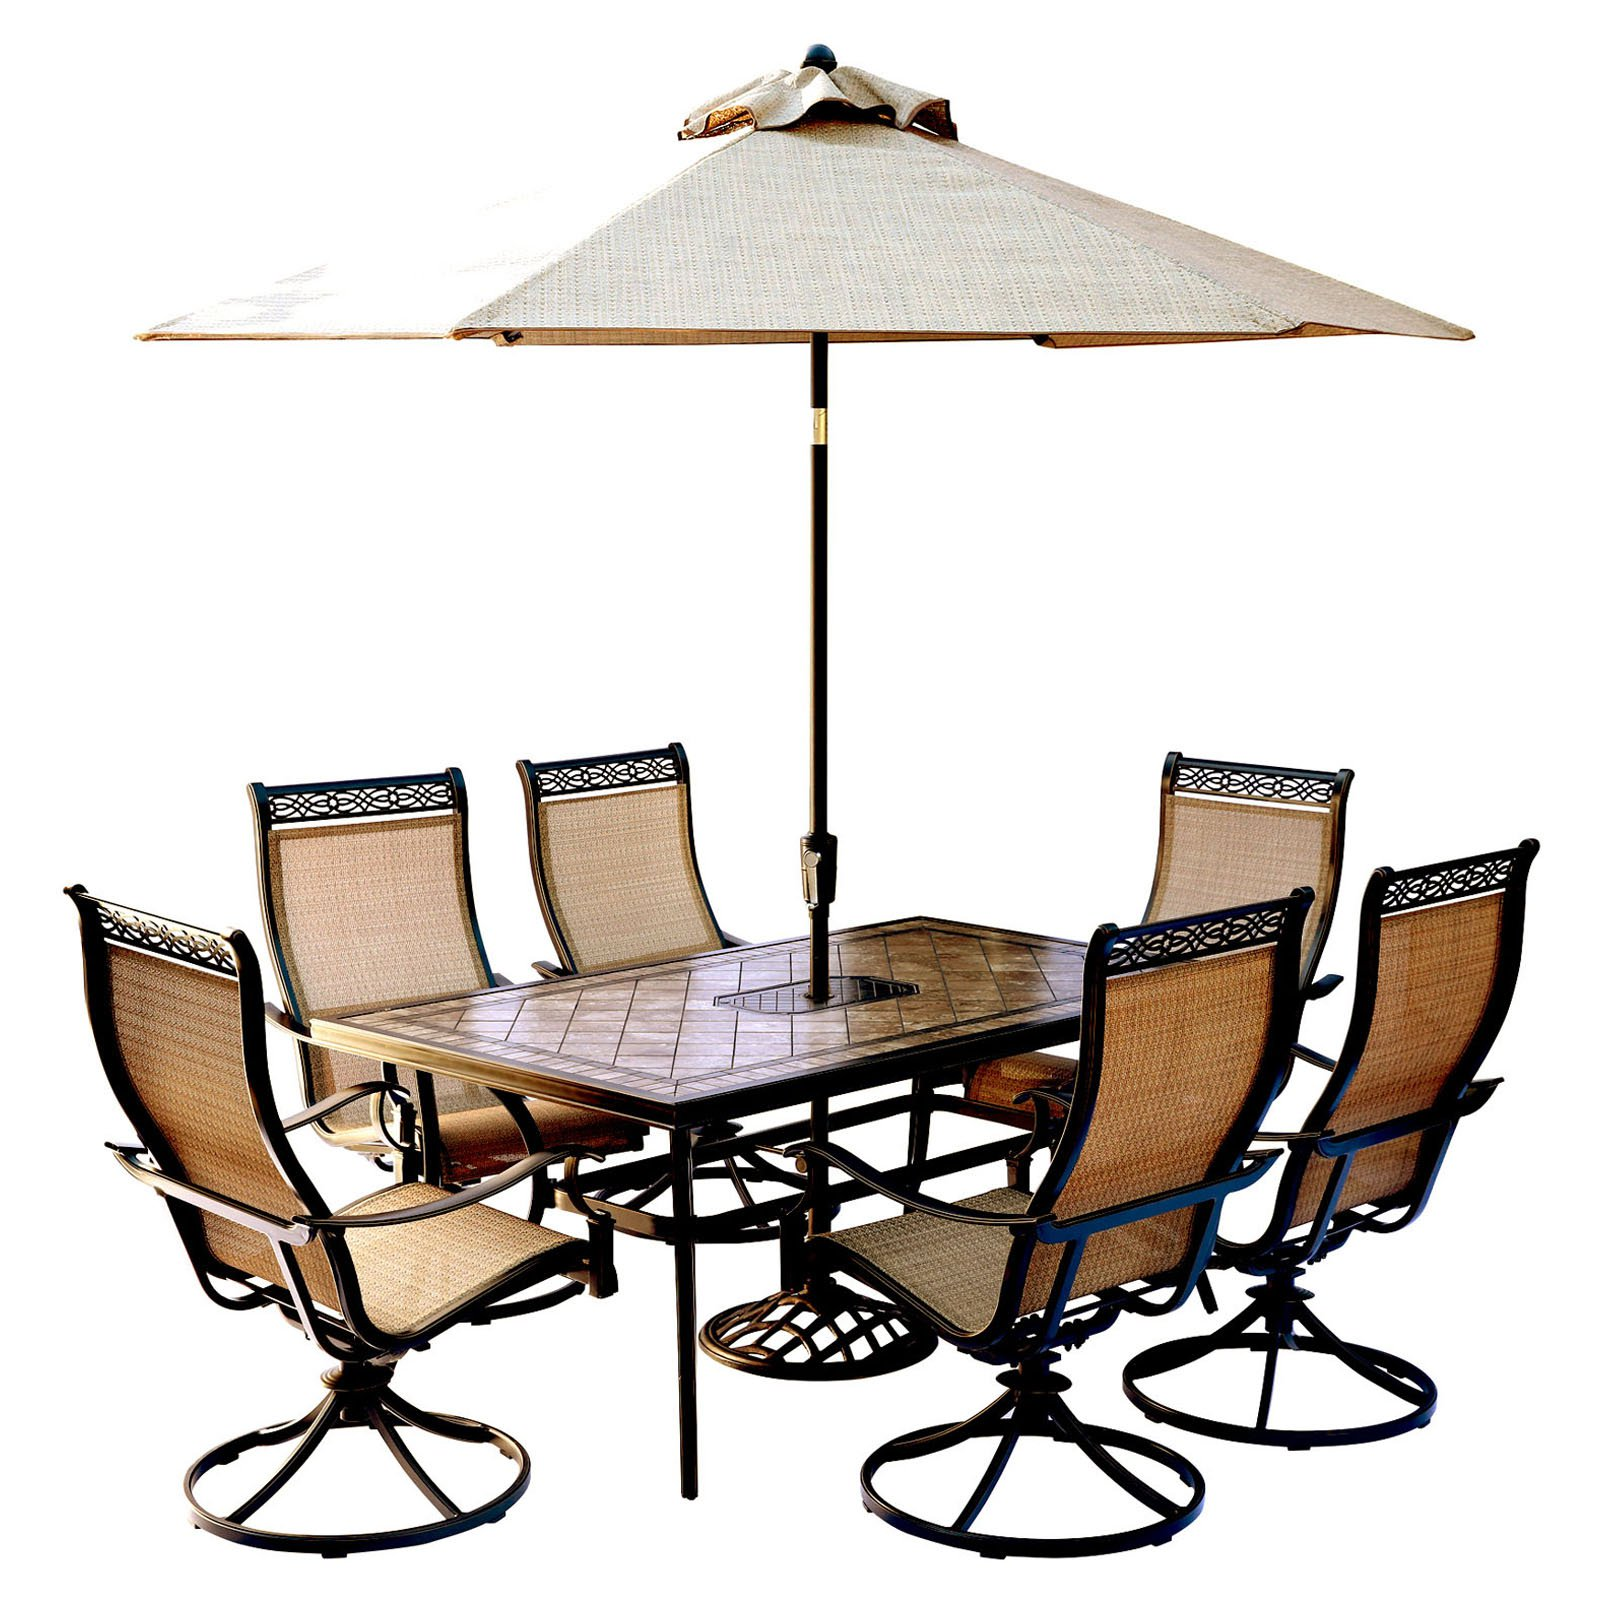 "Hanover Outdoor Monaco 7-Piece Sling Dining Set with 42"" x 84"" Glass-Top Table and 6 Swivel Rockers, Cedar"